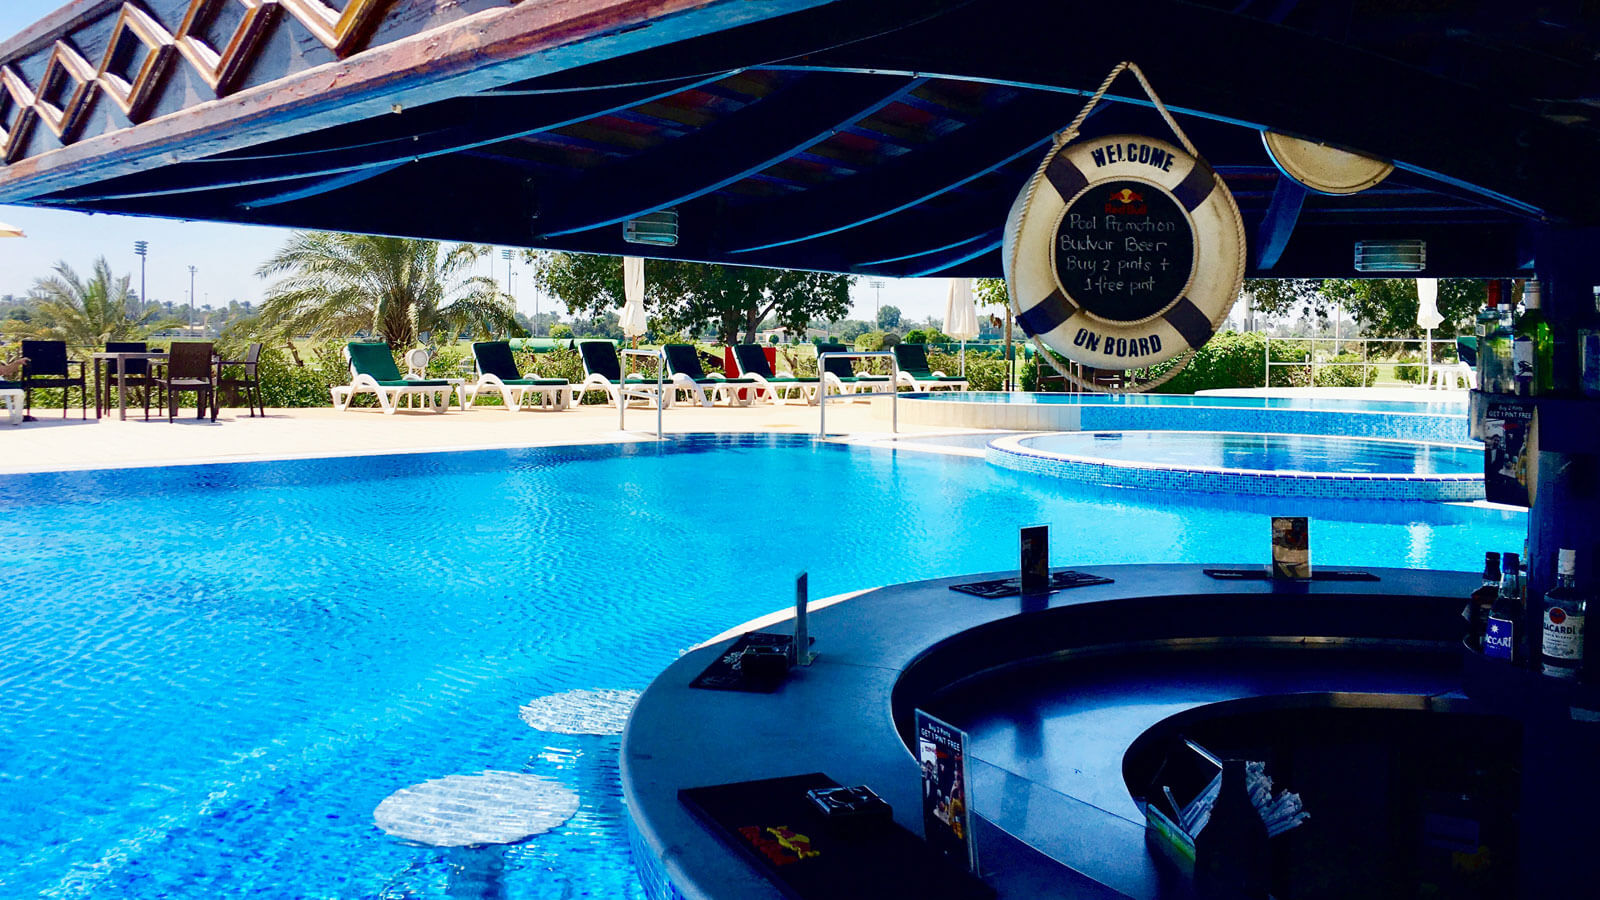 pool-bar-1-abu-dhabi-city-golf-club.jpg